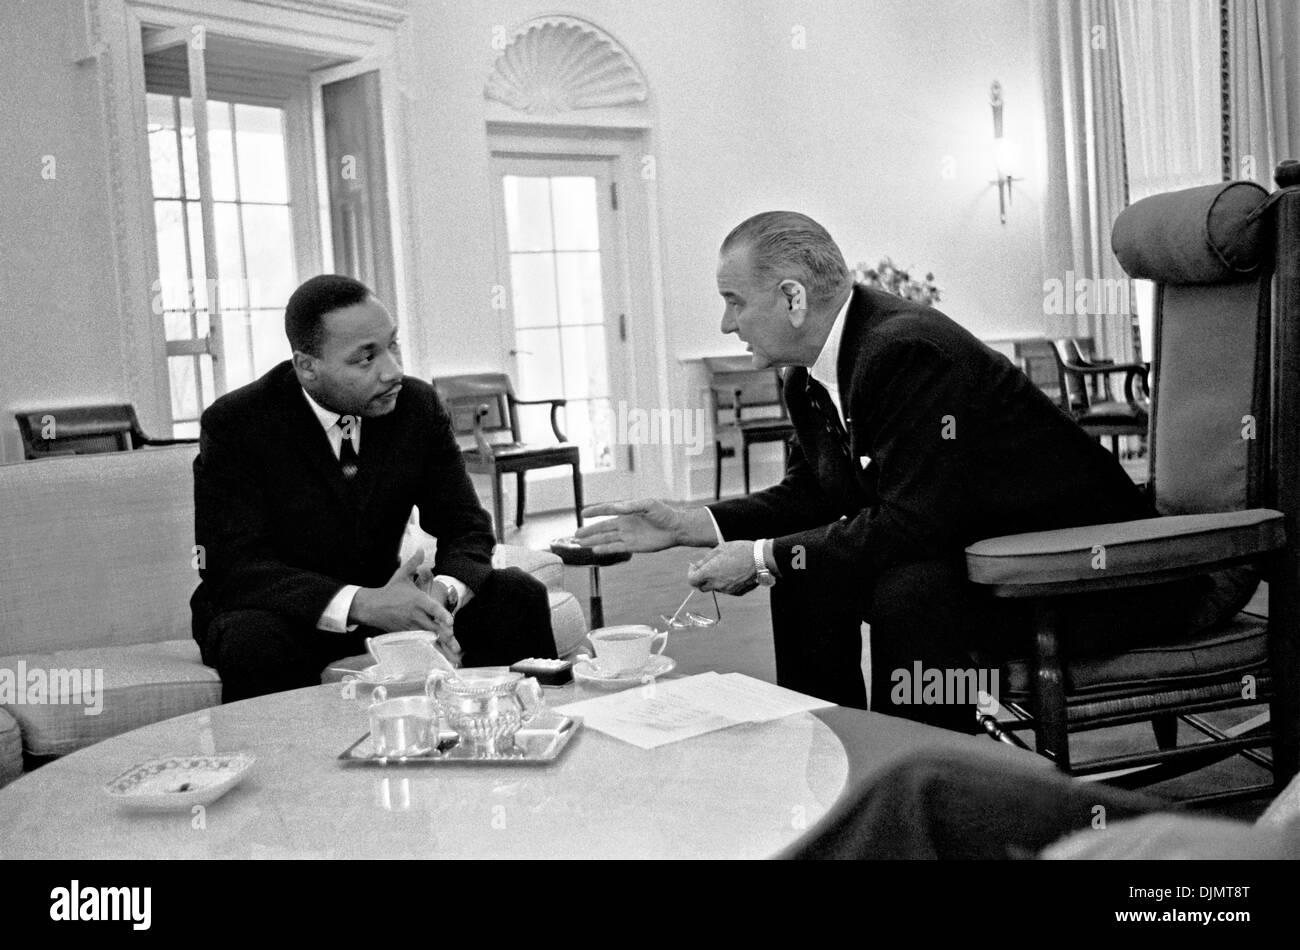 Rev. Dr. Martin Luther King, Jr. meeting with US President Lyndon B. Johnson in the Oval Office of the White House December 3, 1963 in Washington, DC. - Stock Image